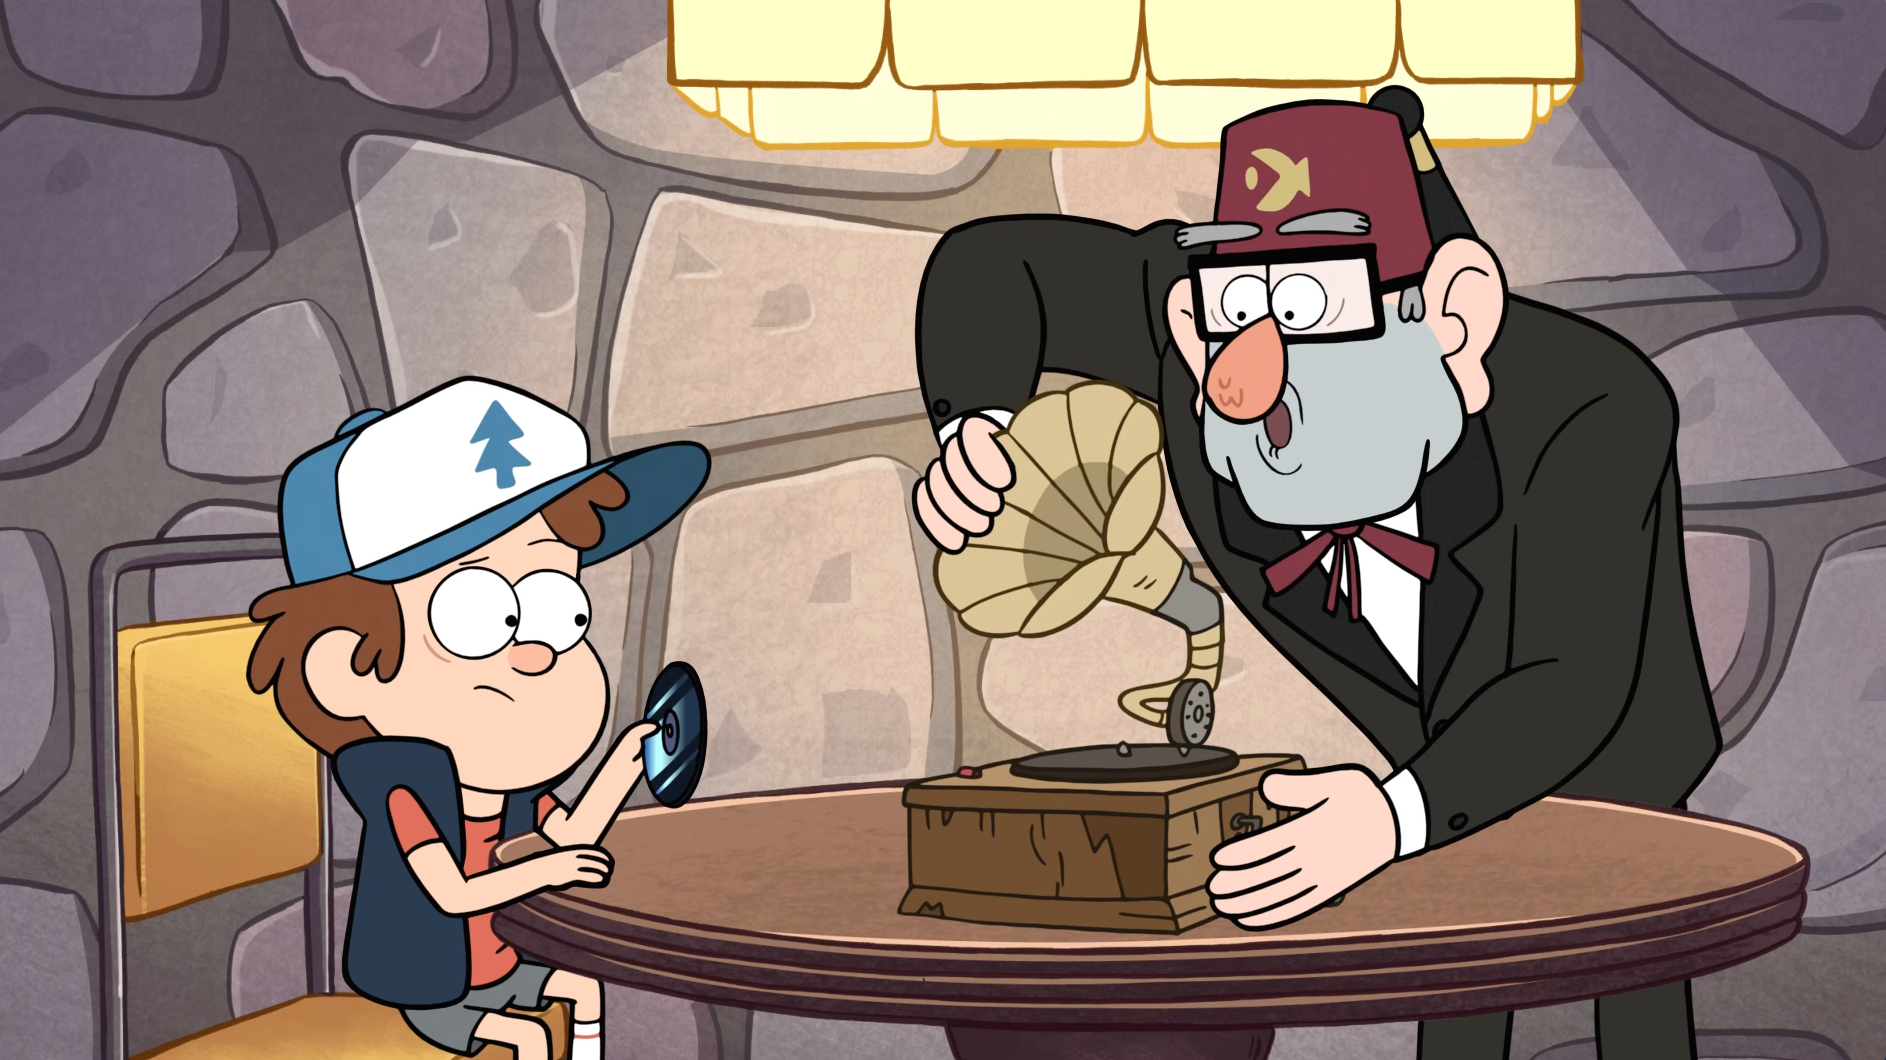 Cómo encontrar mensagens subliminares - Anti-Lifehacks #873 - Gravity Falls